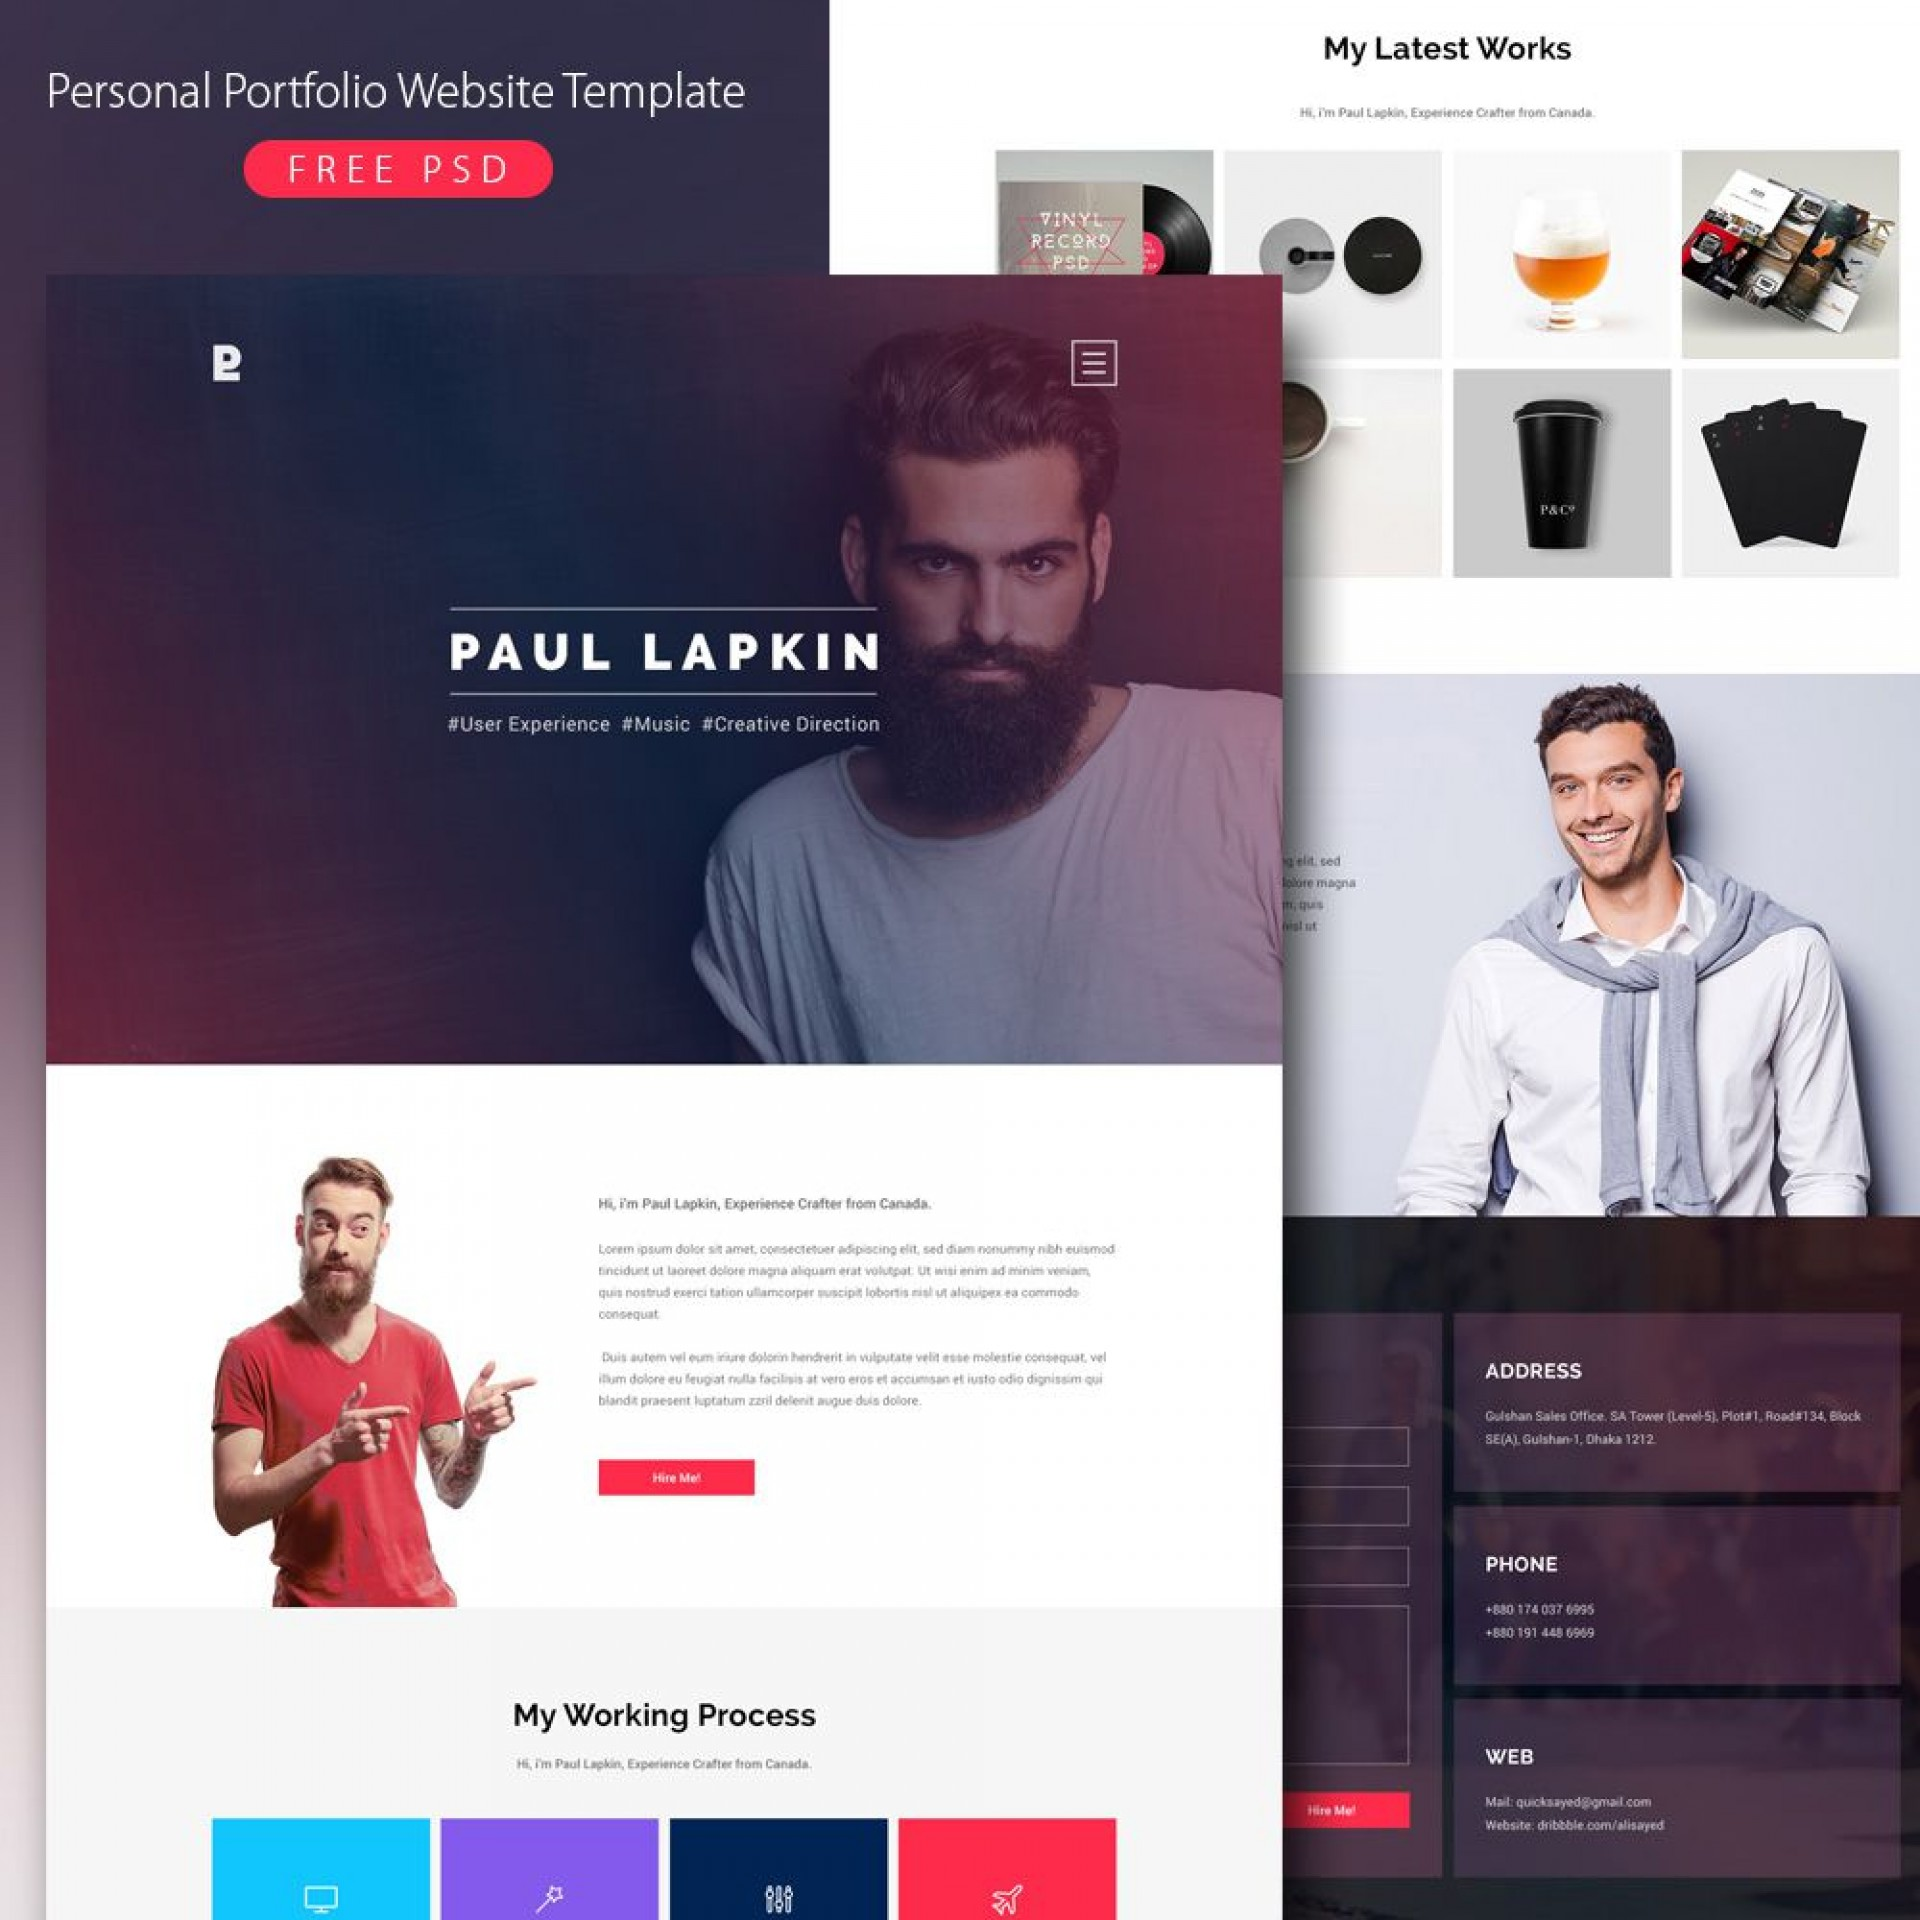 008 Rare Personal Portfolio Template Free Download Inspiration  Psd Powerpoint1920